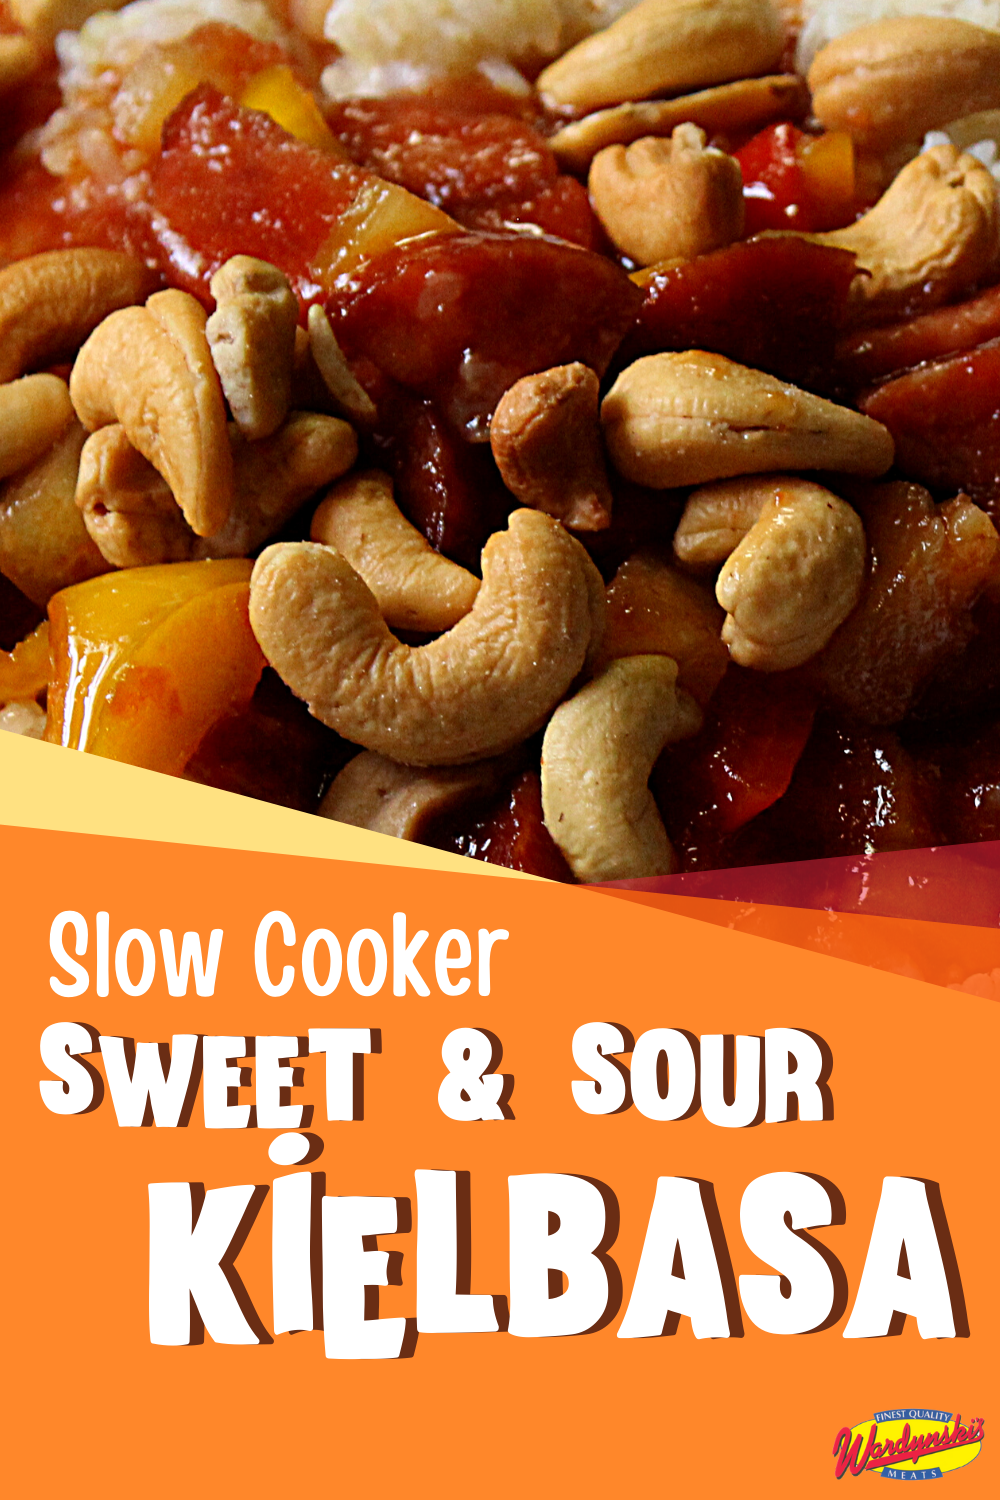 Sweet & Sour Kielbasa is a delicious and easy slow cooker recipe that combines pineapples, Polish sausage, and delicious sauce.